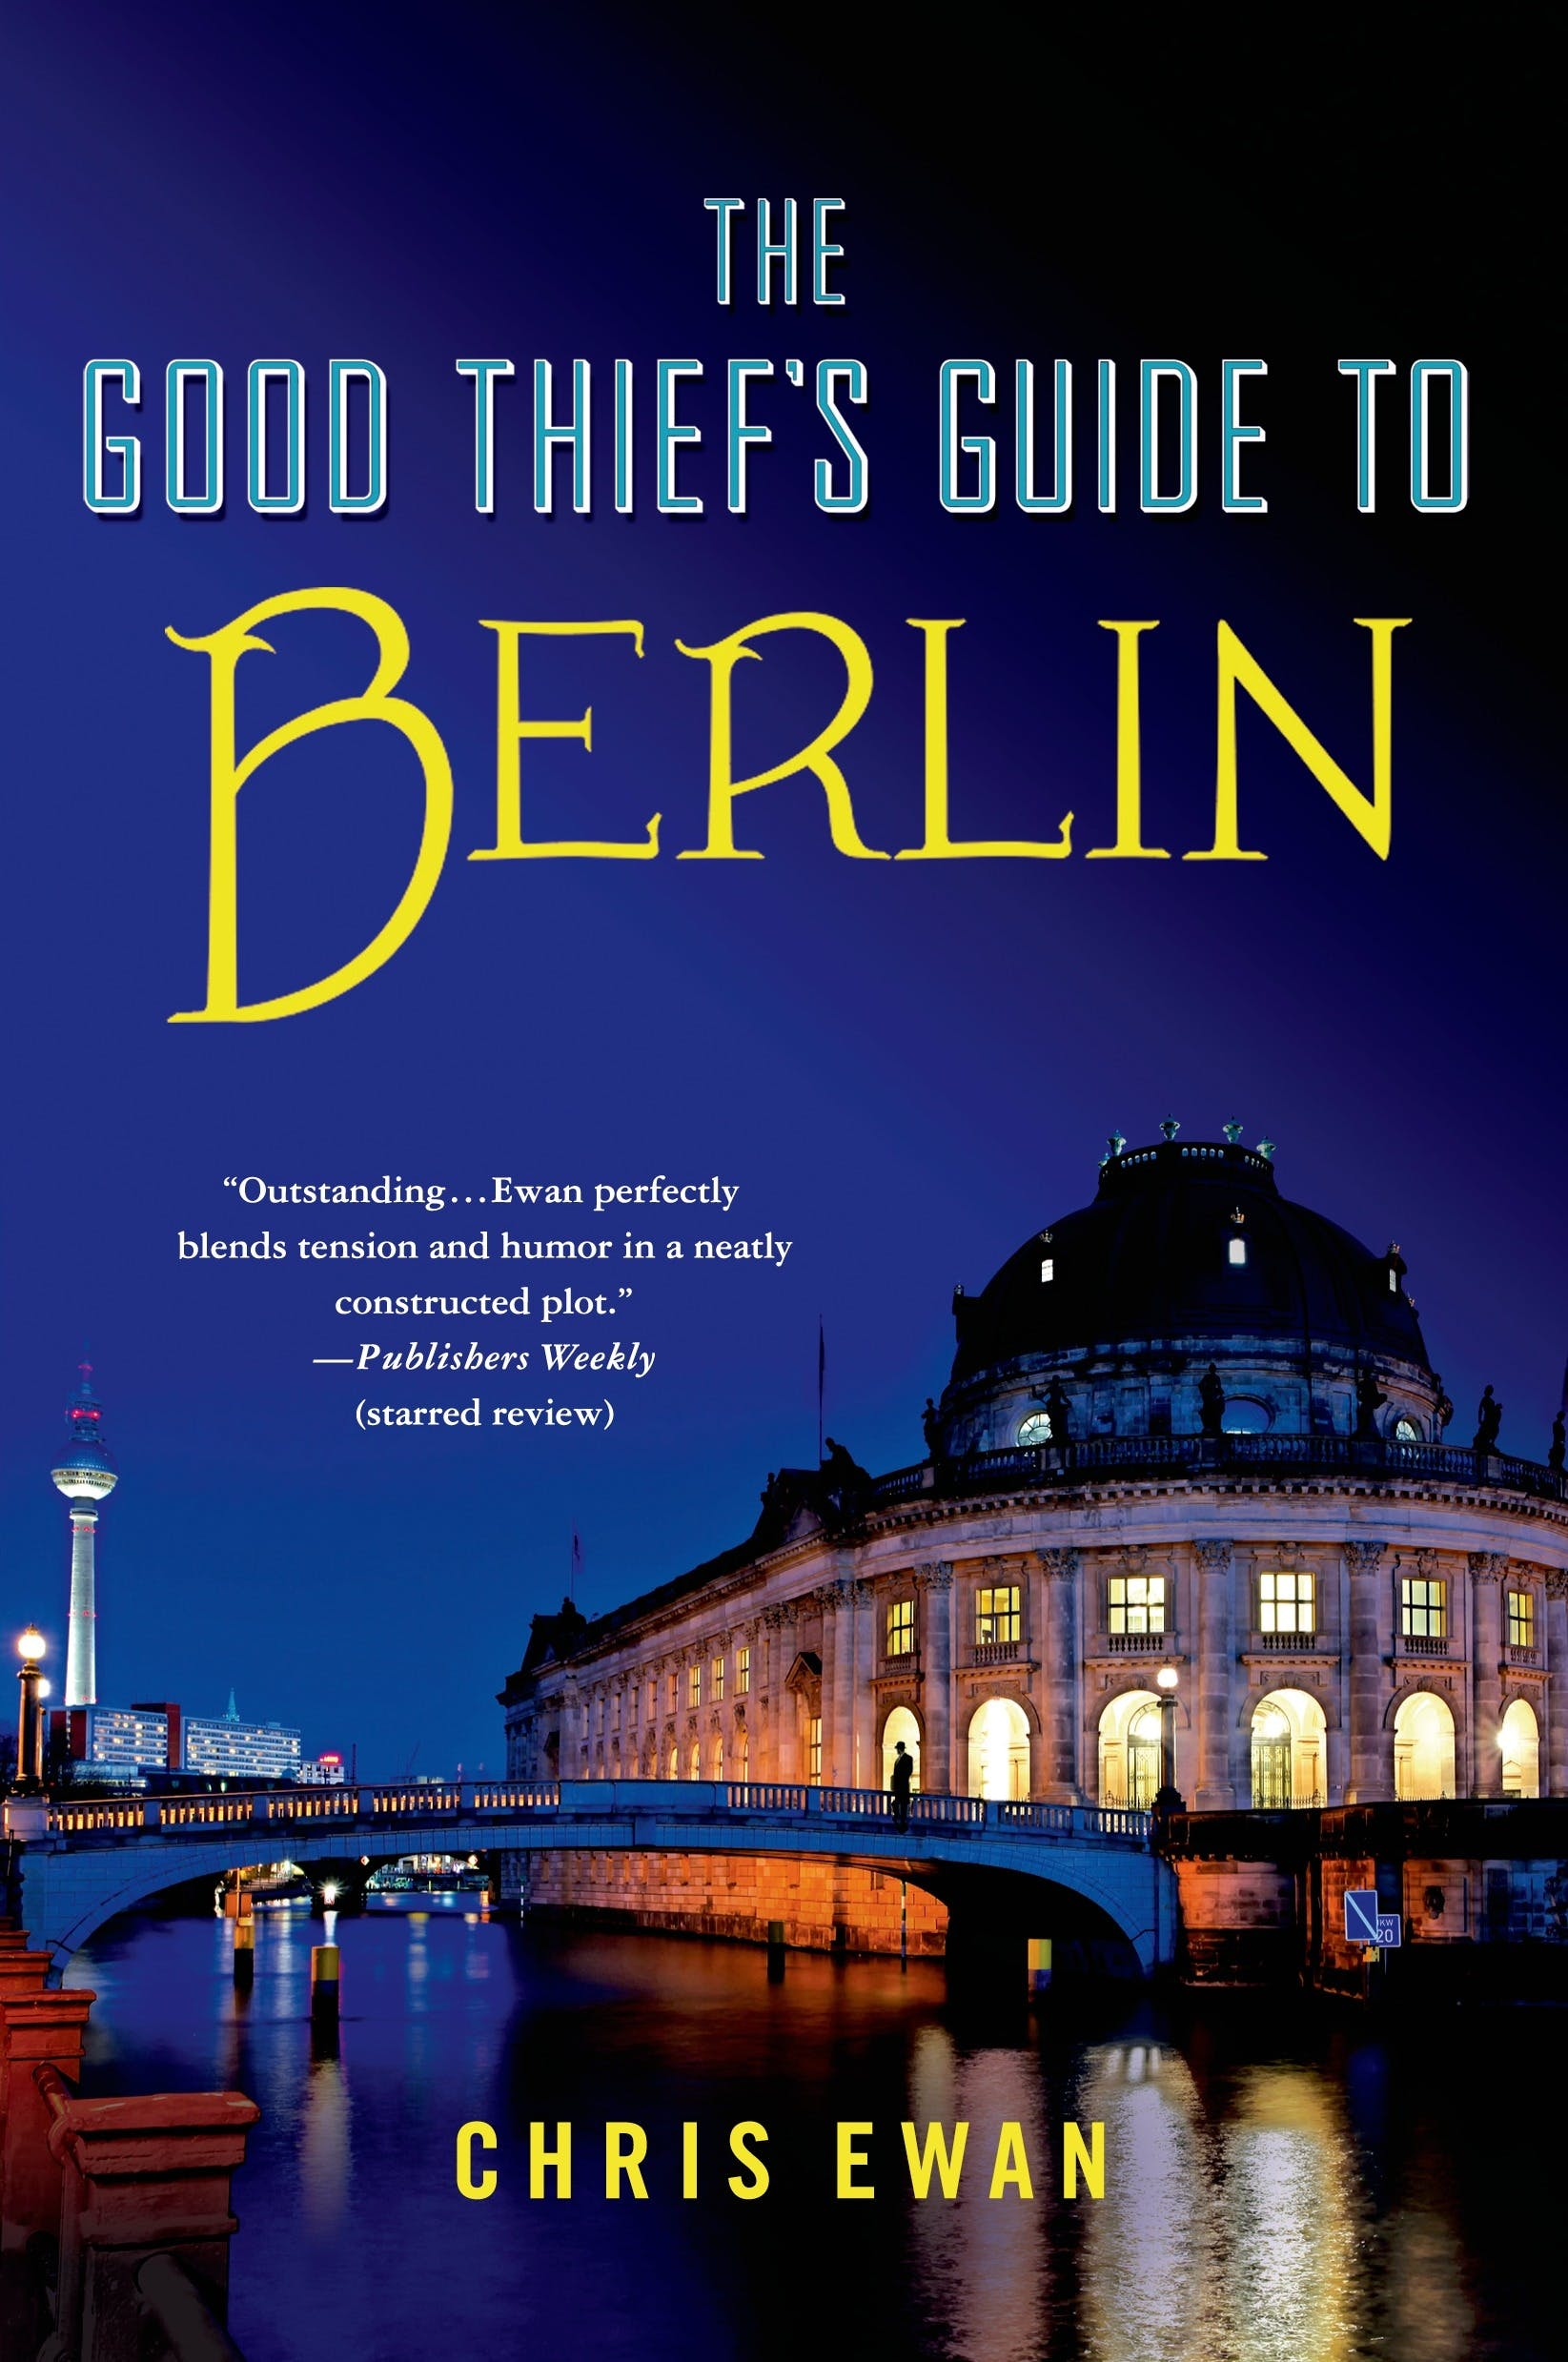 Image of The Good Thief's Guide to Berlin